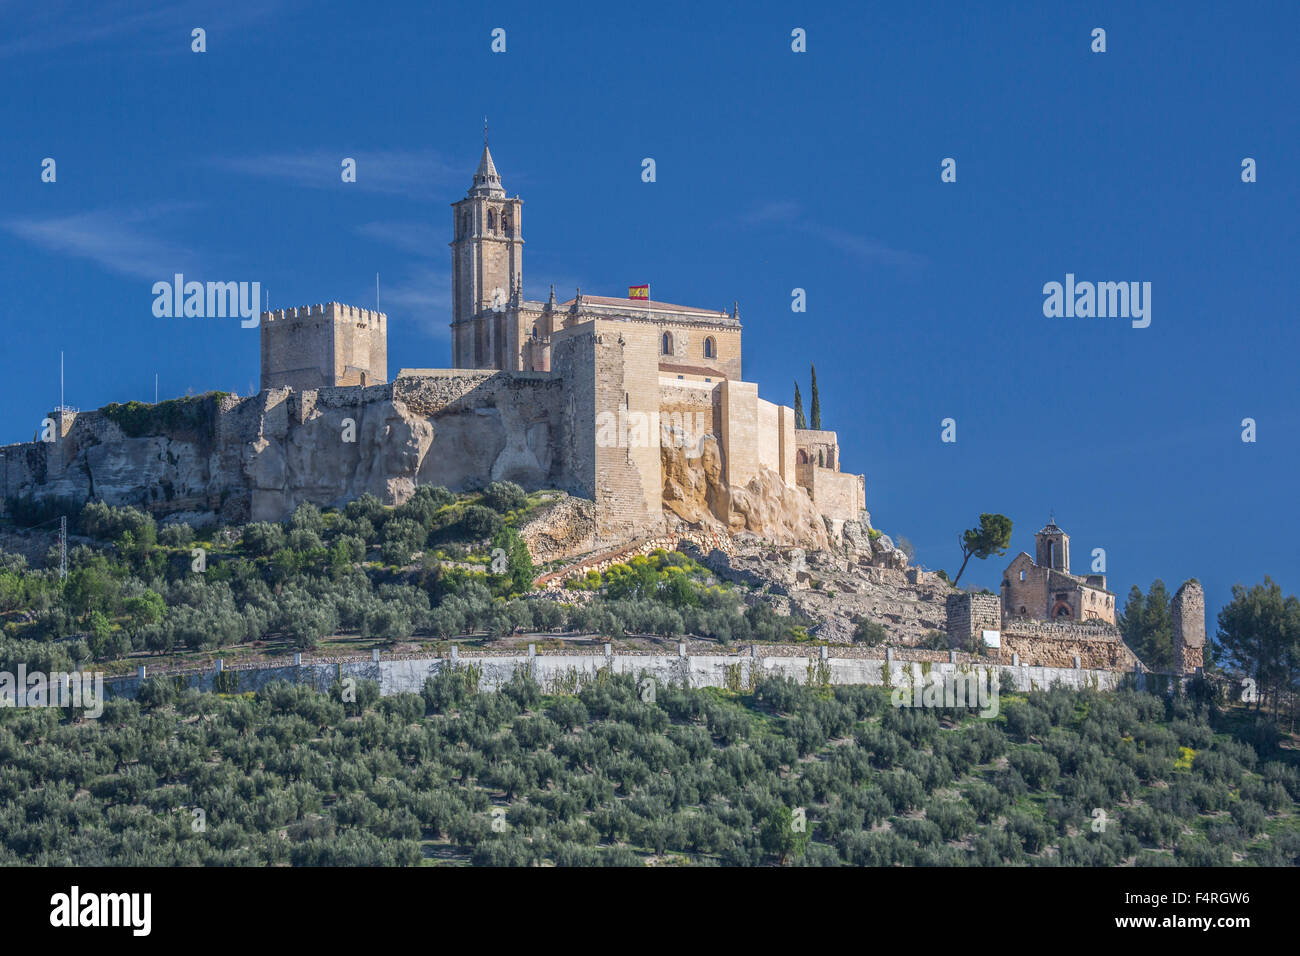 Alcaudete, town, Andalusia, Jaen, Landscape, Spain, Europe, Spring, architecture, castle, church, church, olive, Stock Photo